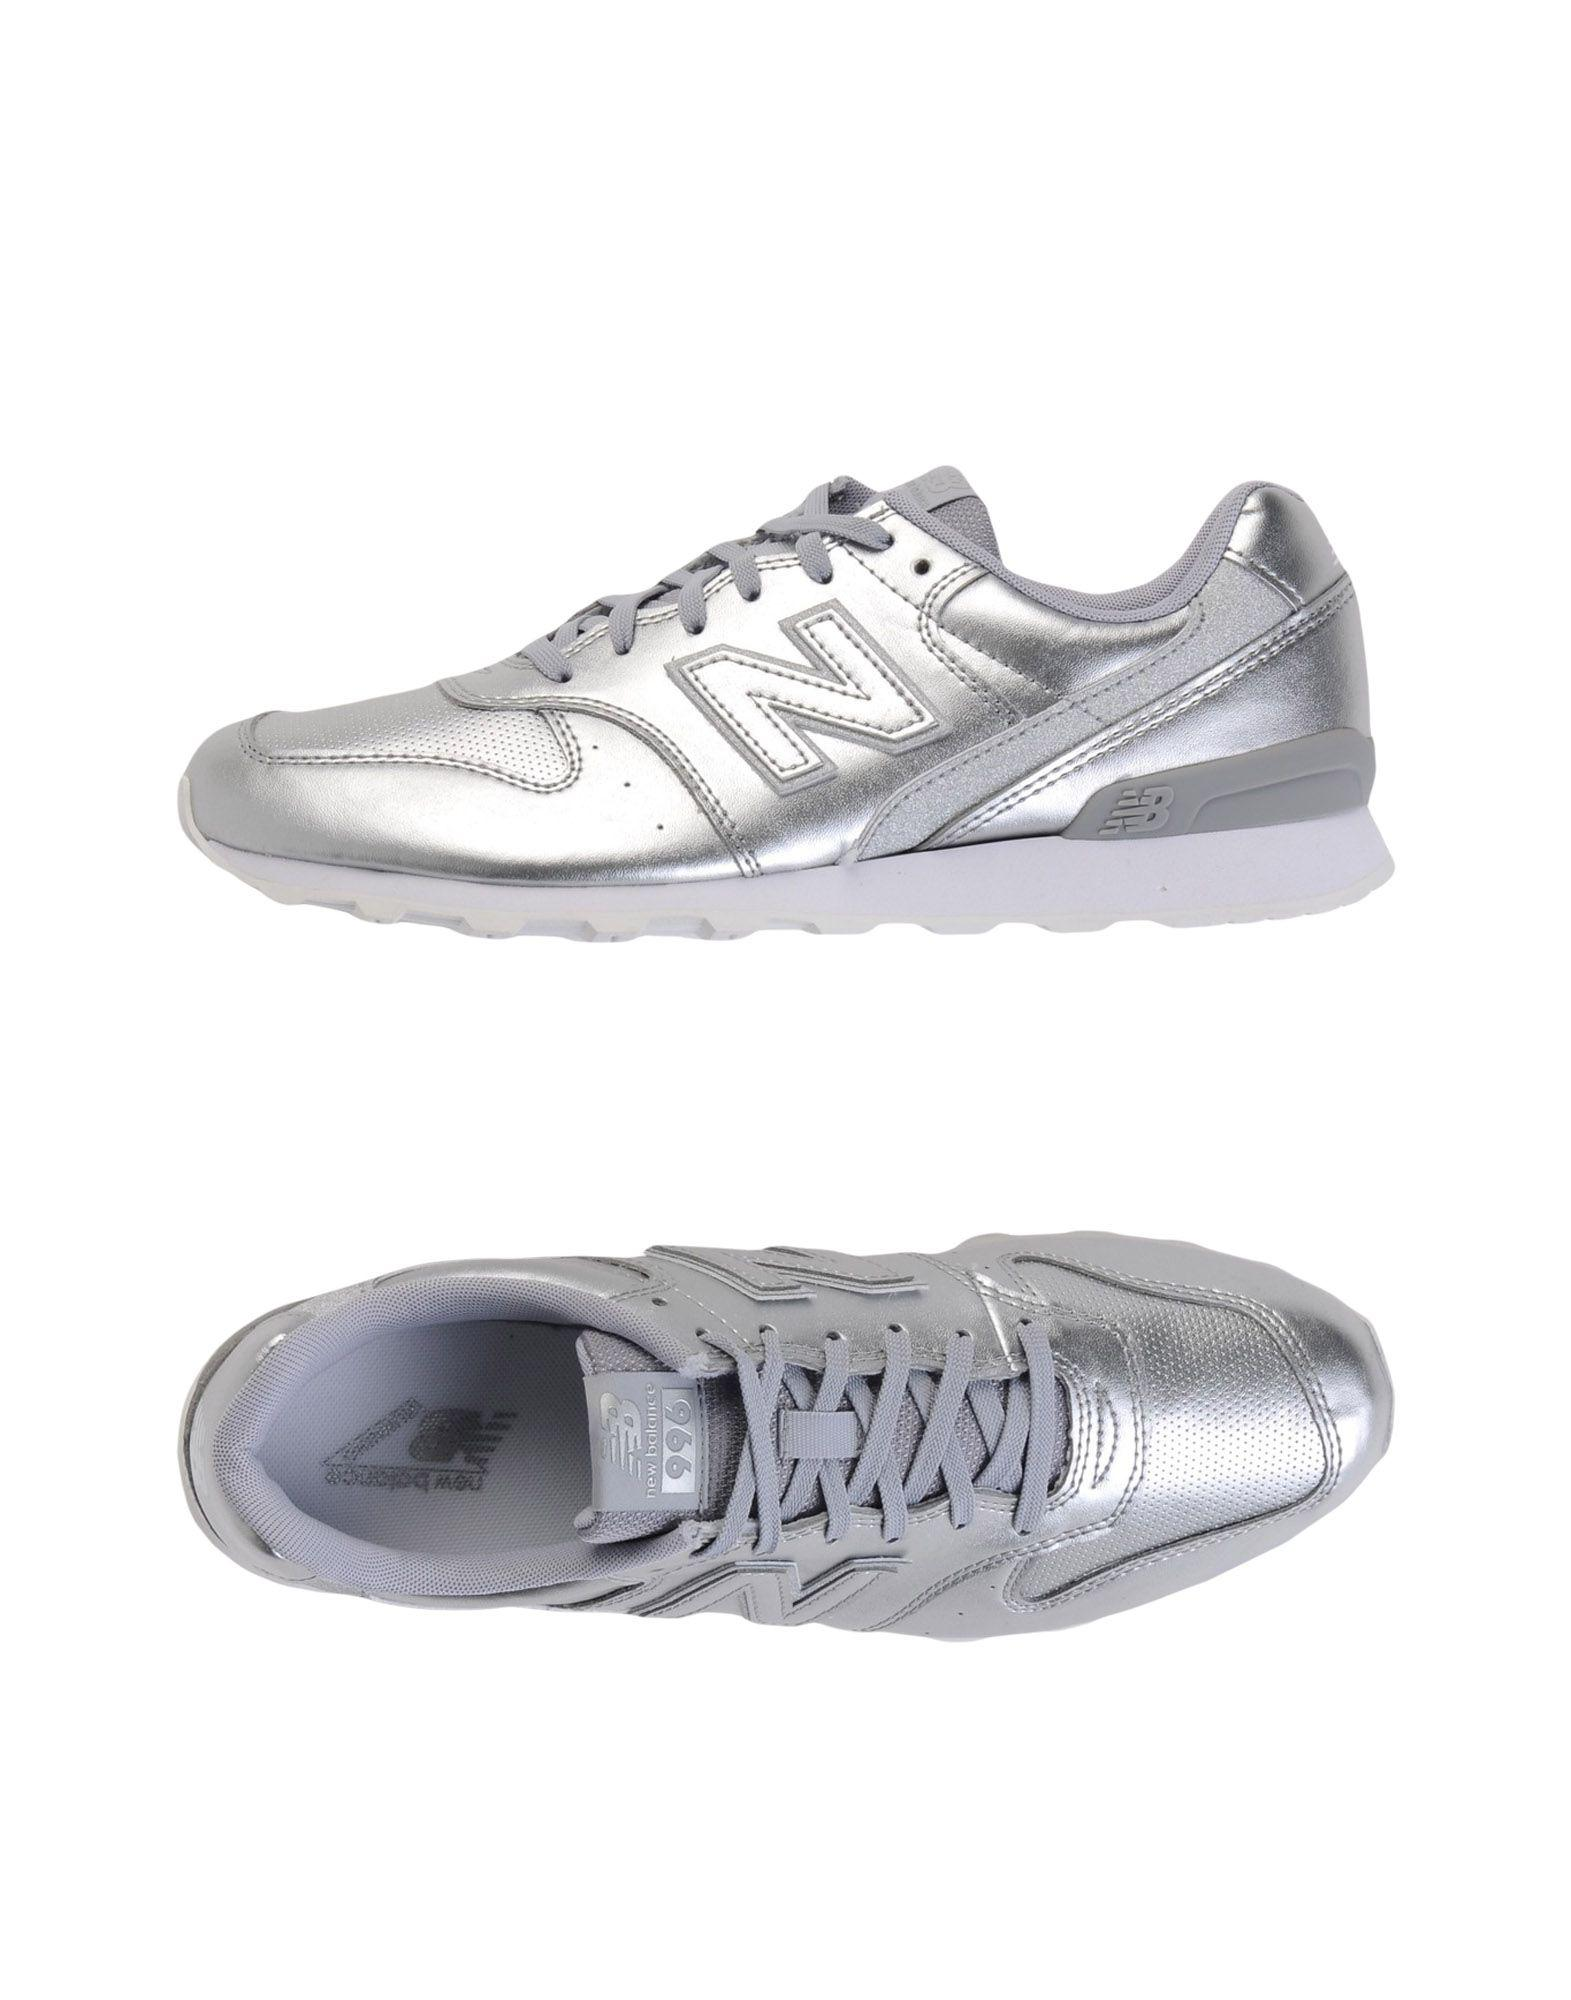 Lyst Tennisschuhe Mettallic New In Low Balance Sneakersamp; qSzGUVLMp